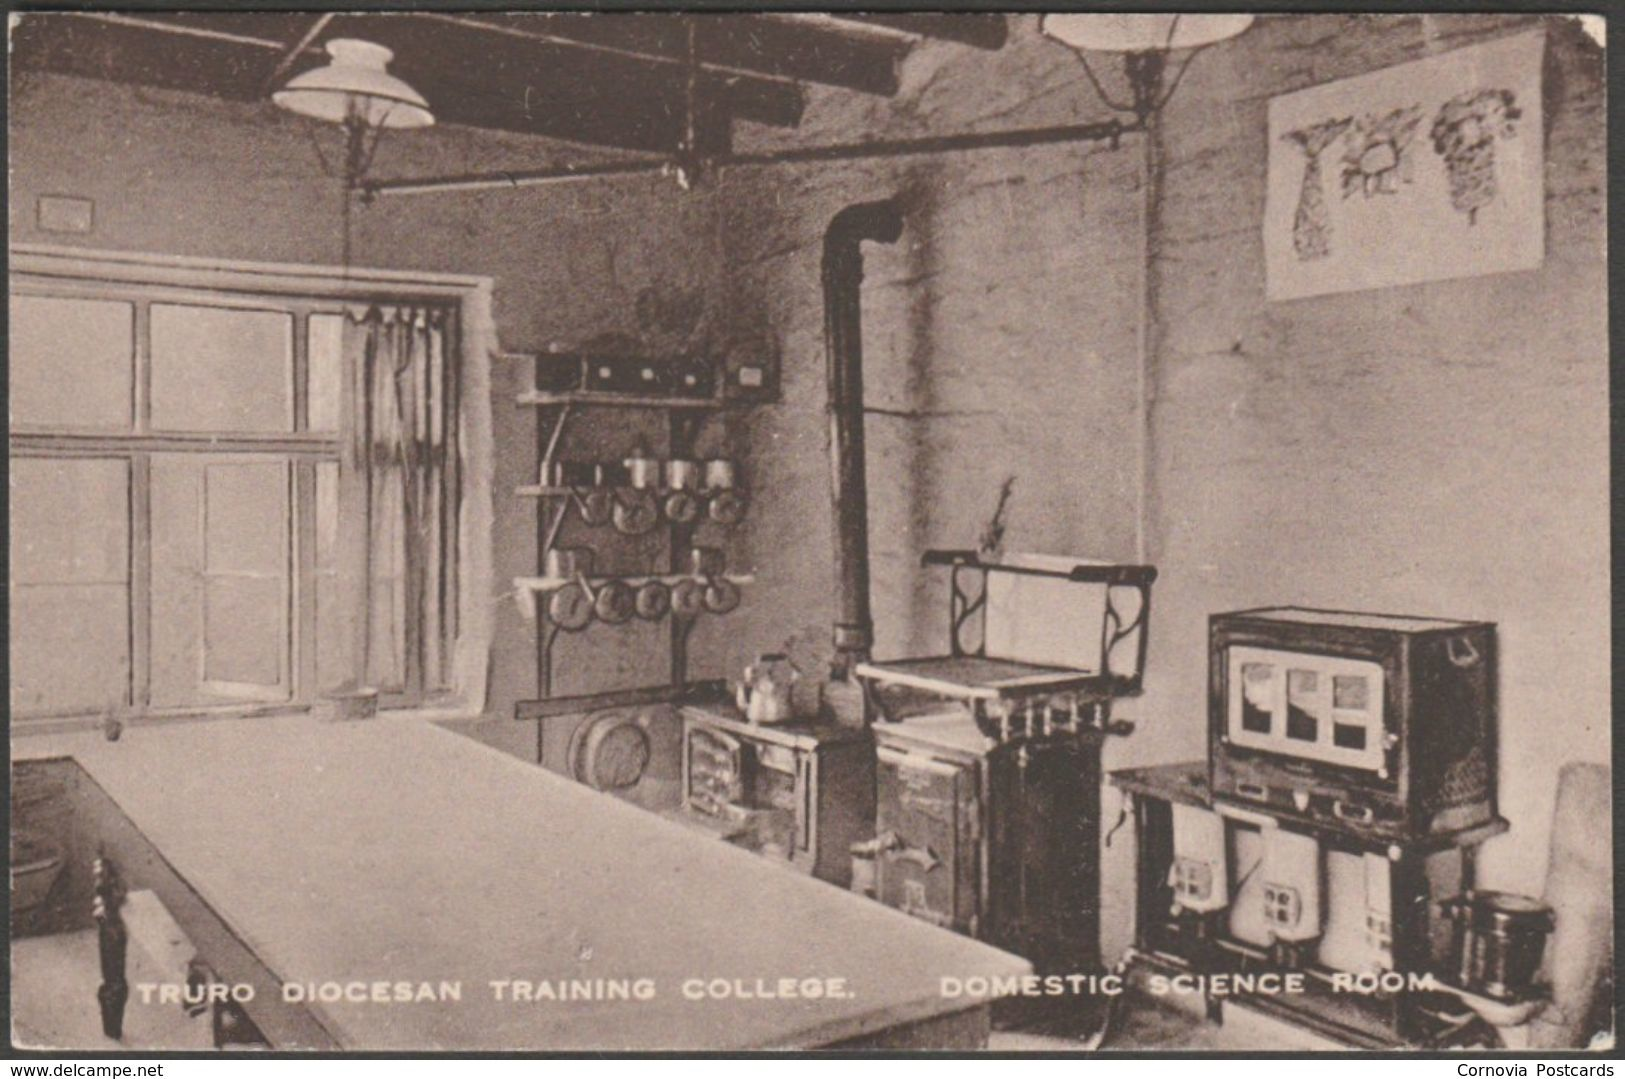 Domestic Science Room, Truro Diocesan Training College, Cornwall, 1923 - Postcard